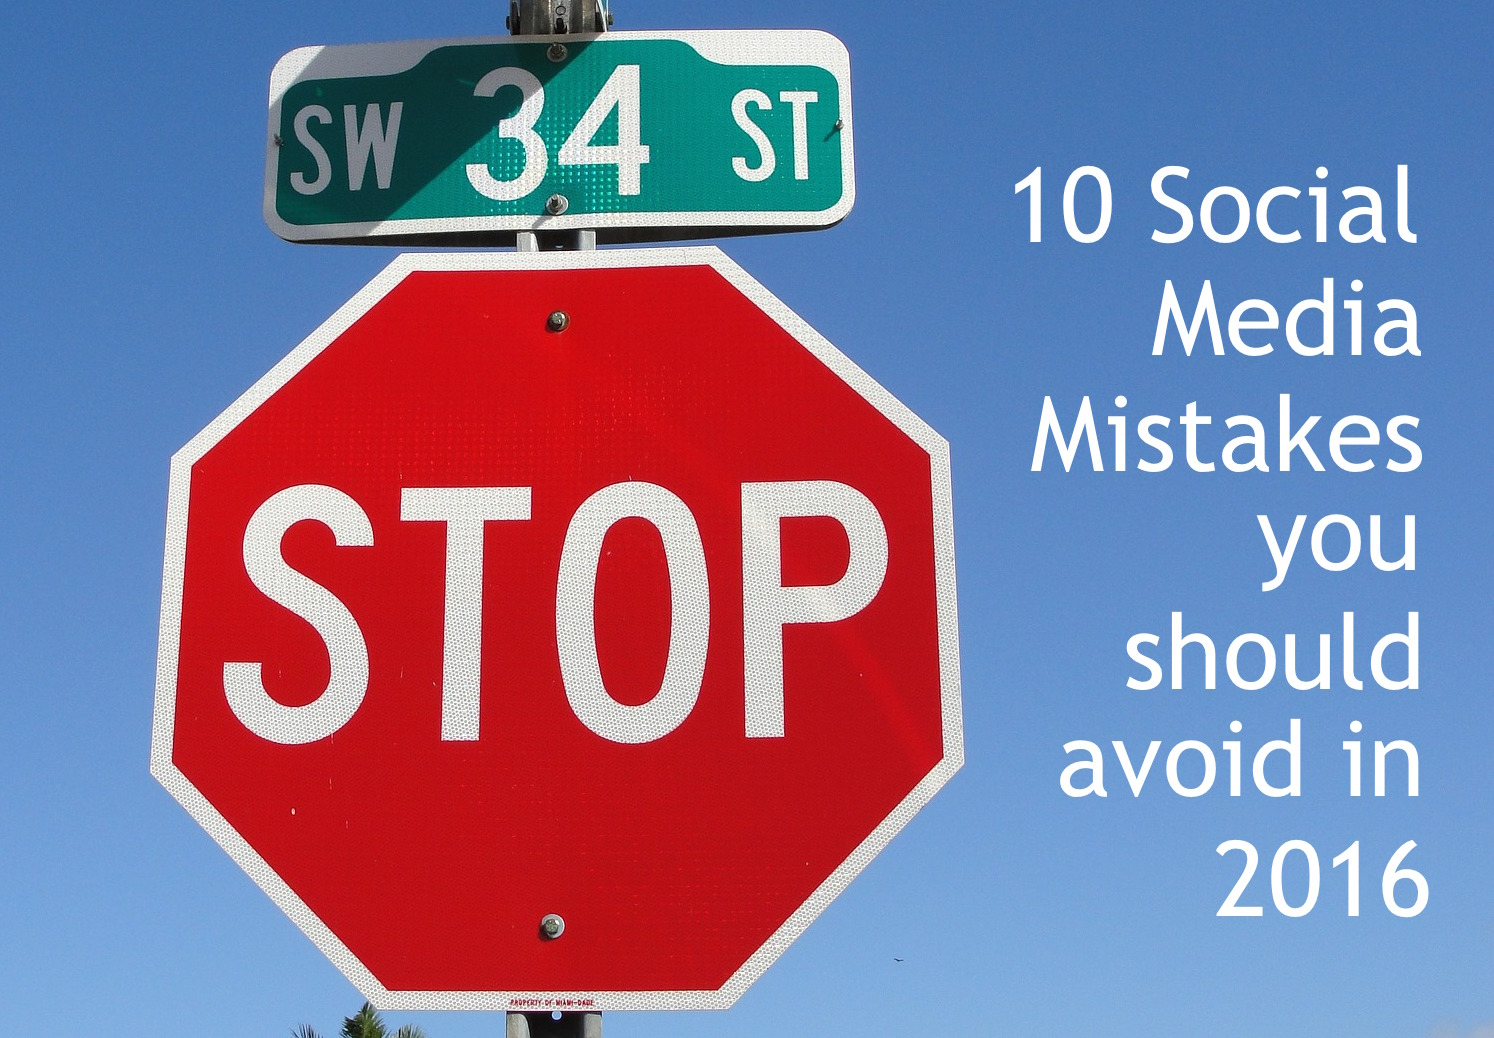 MISTAKES ON SOCIAL stop signs CATMEDIA